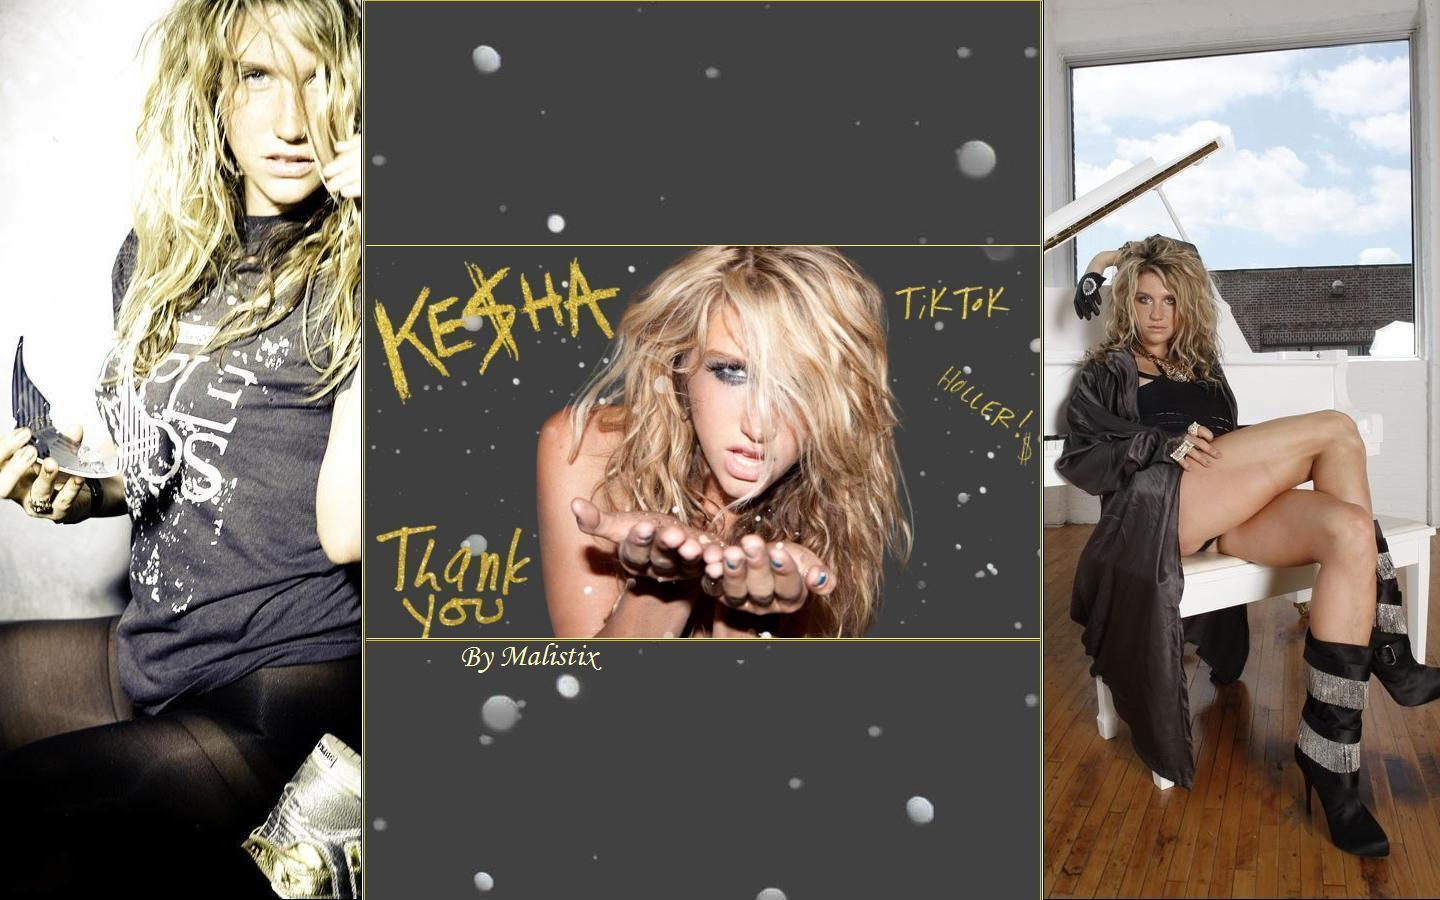 New Wallpaper Kesha Wallpaper Kesha Hot Pictures Kesha Sensual Poses 1440x900